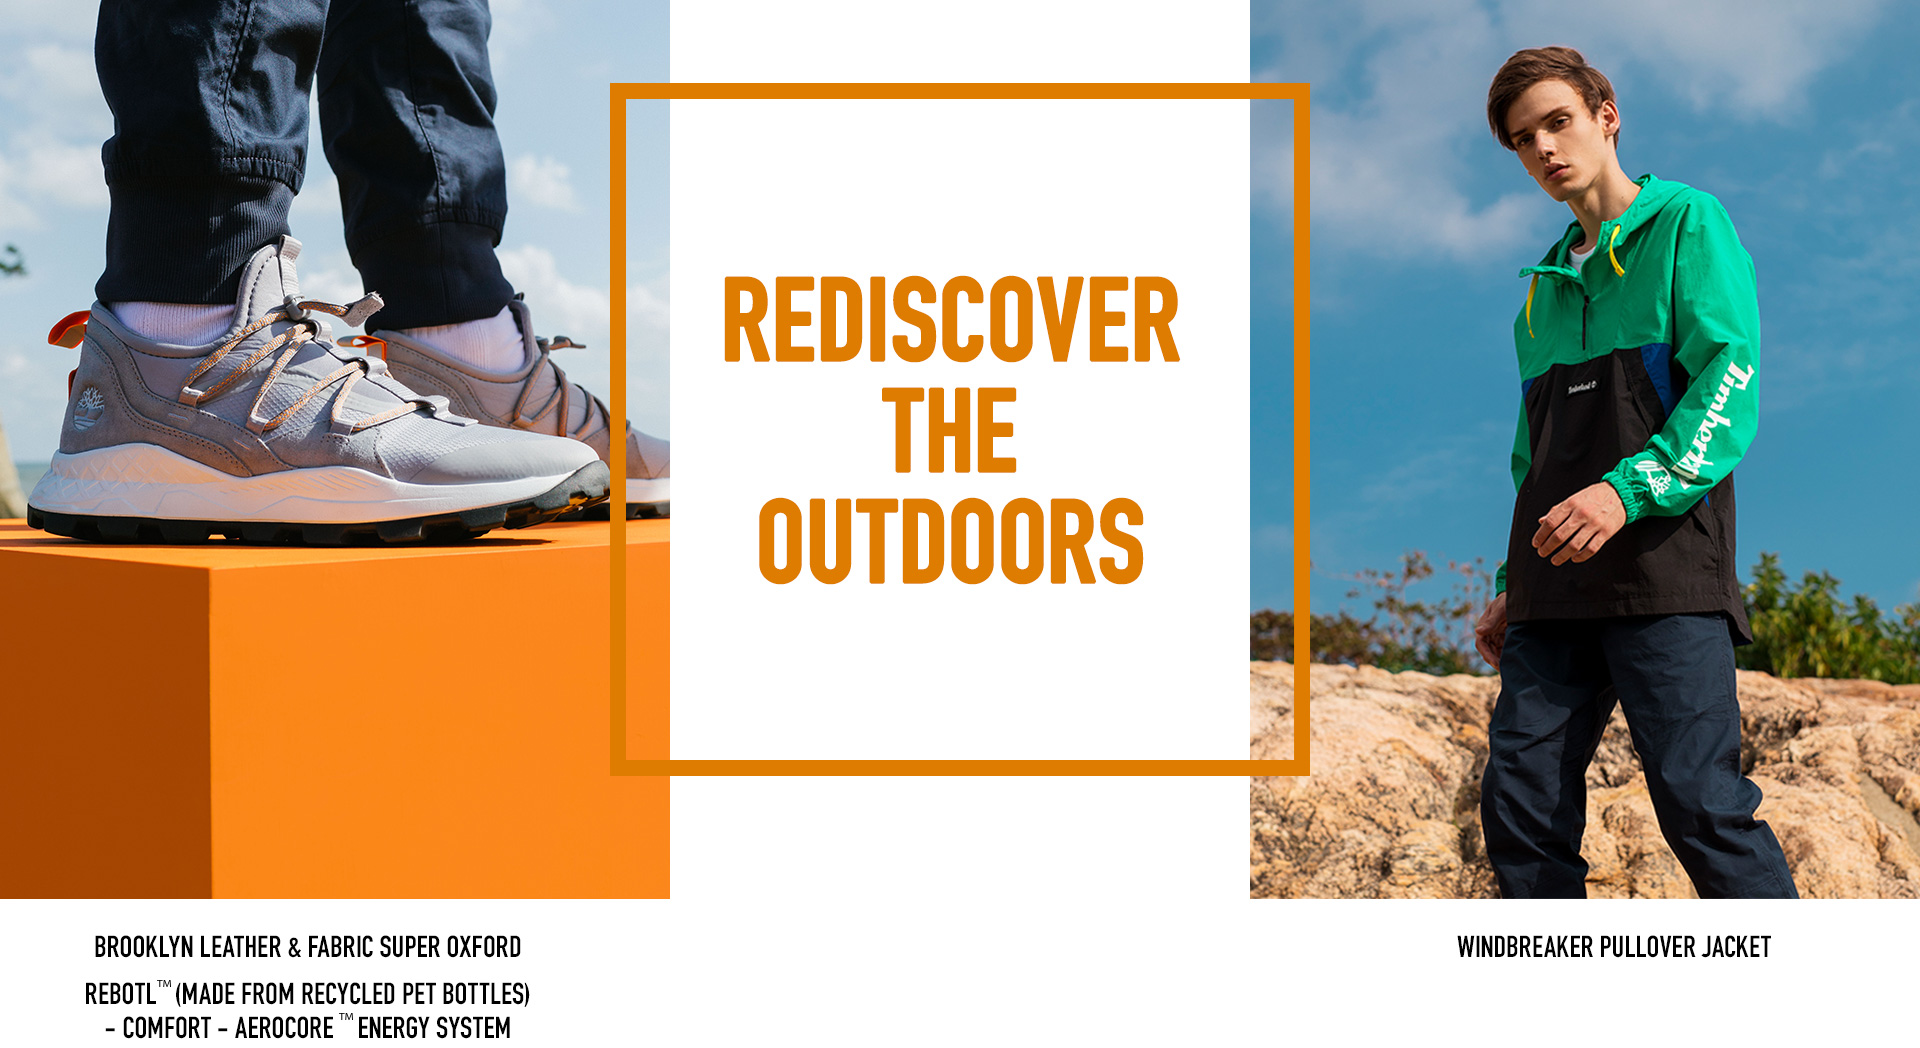 Rediscover the Outdoors